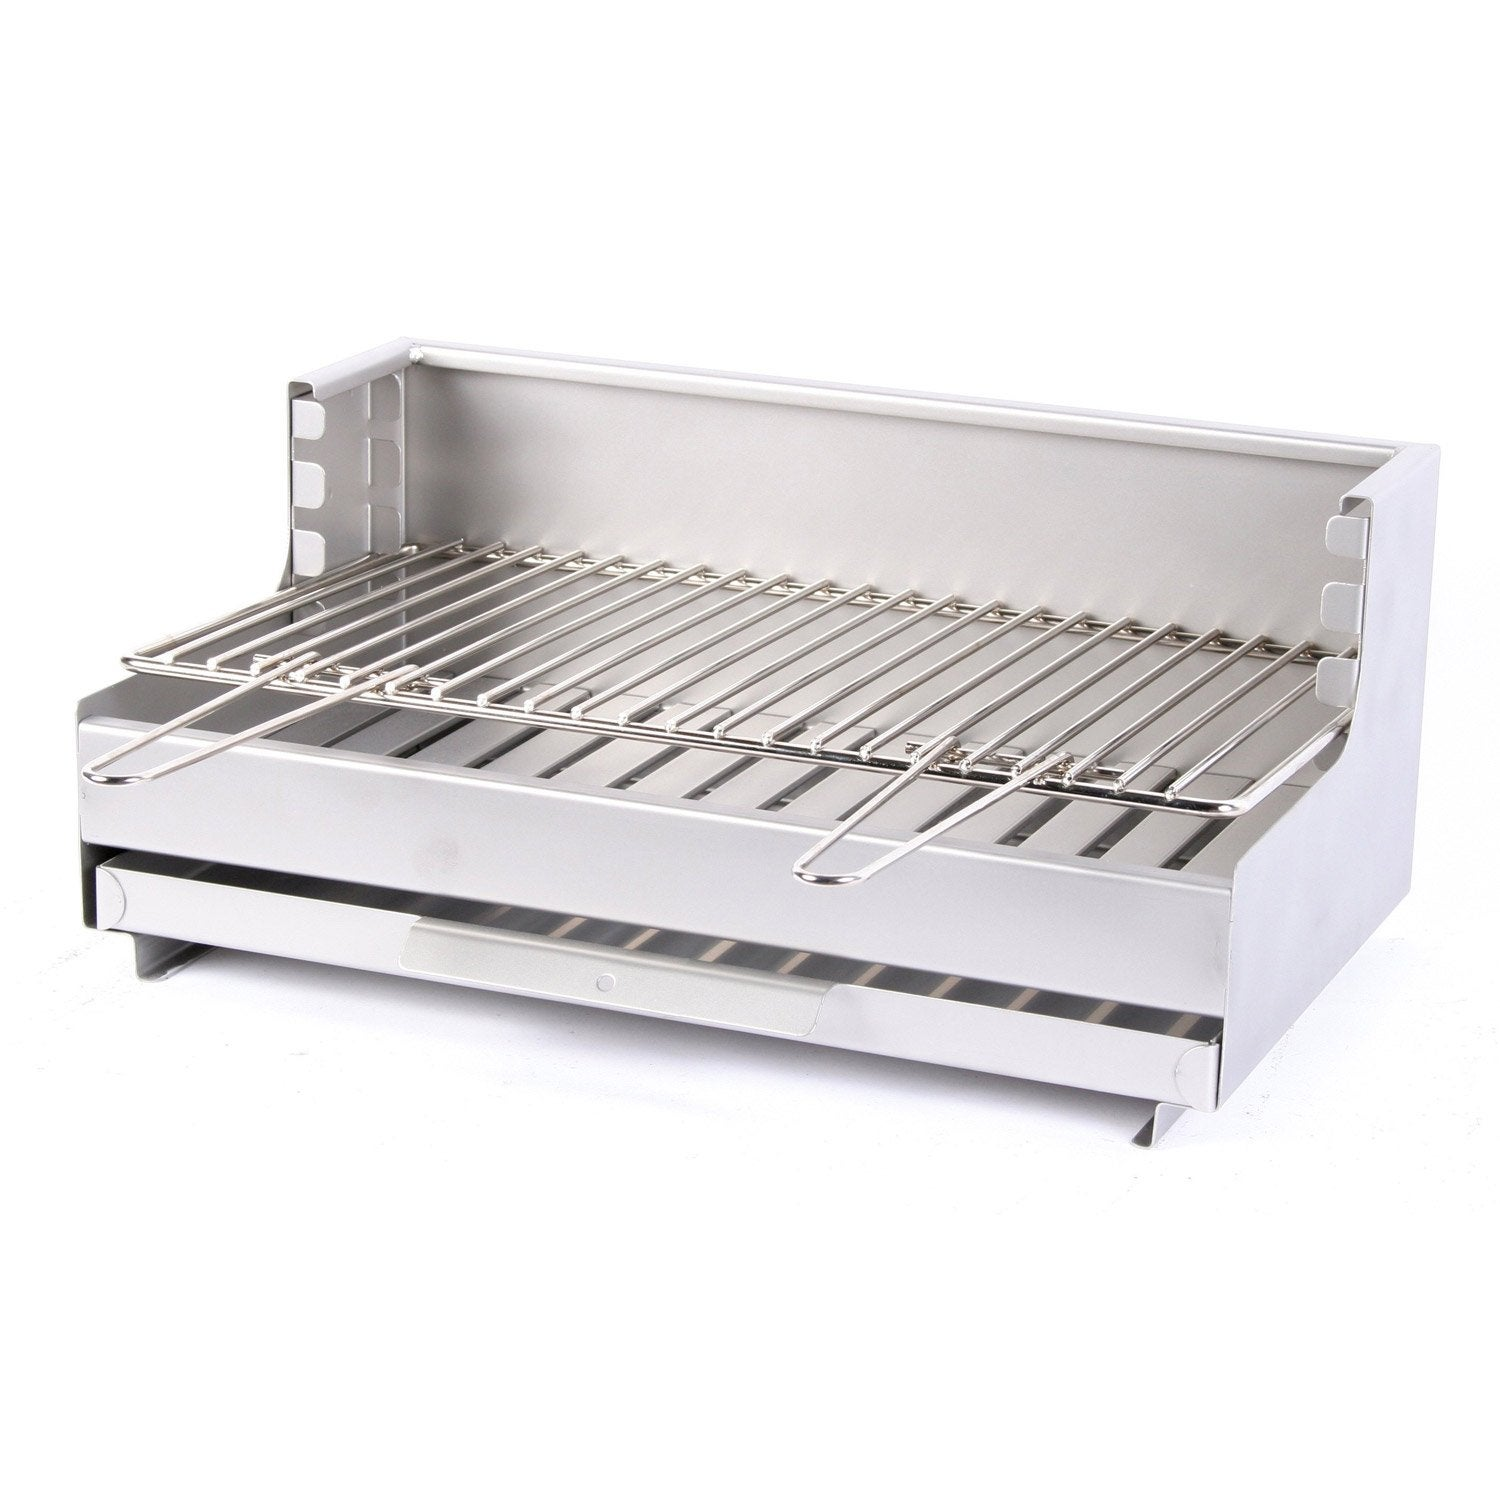 Grilloir en inox gbi416 x x cm leroy merlin for Barbecue exterieur leroy merlin